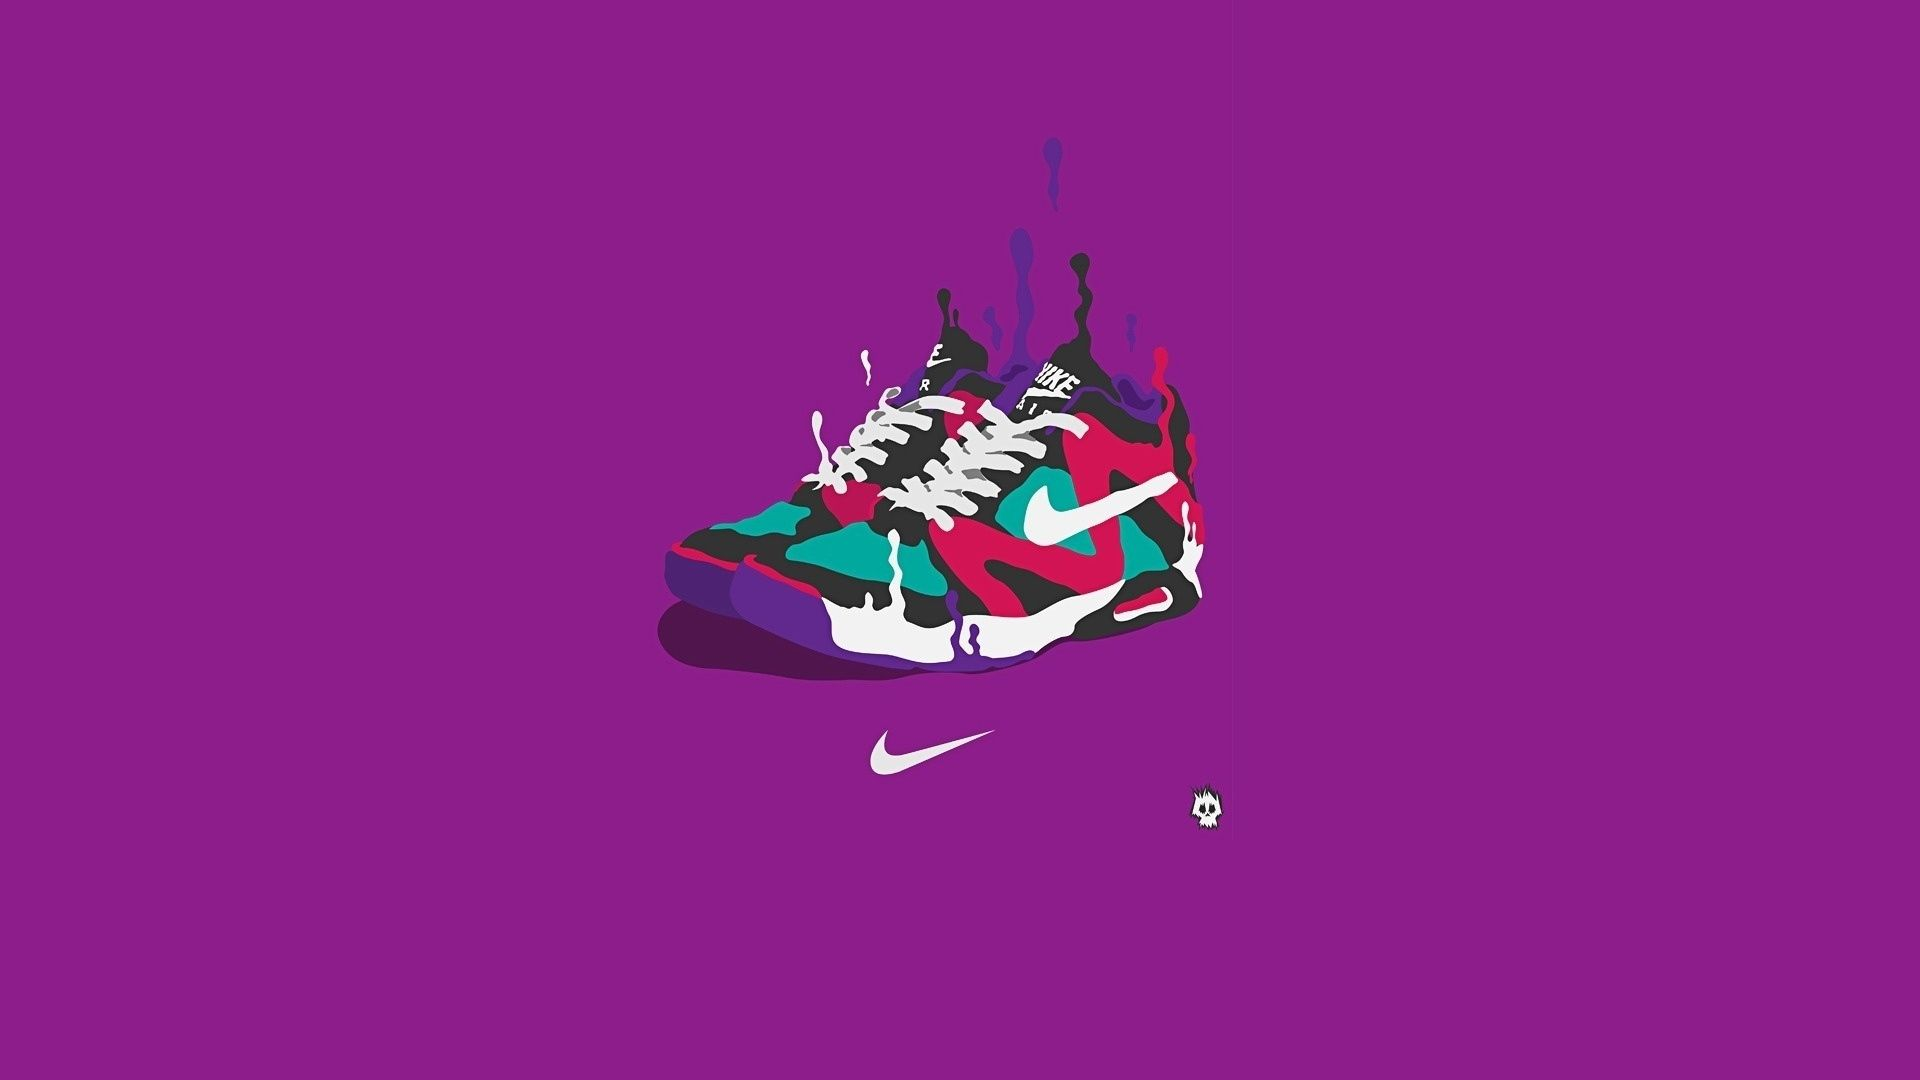 Download Wallpaper 1920x1080 Nike Sneakers Brand Sports Firm Full Hd 1080p Hd Background Sports Wallpapers Nike Logo Wallpapers Nike Wallpaper